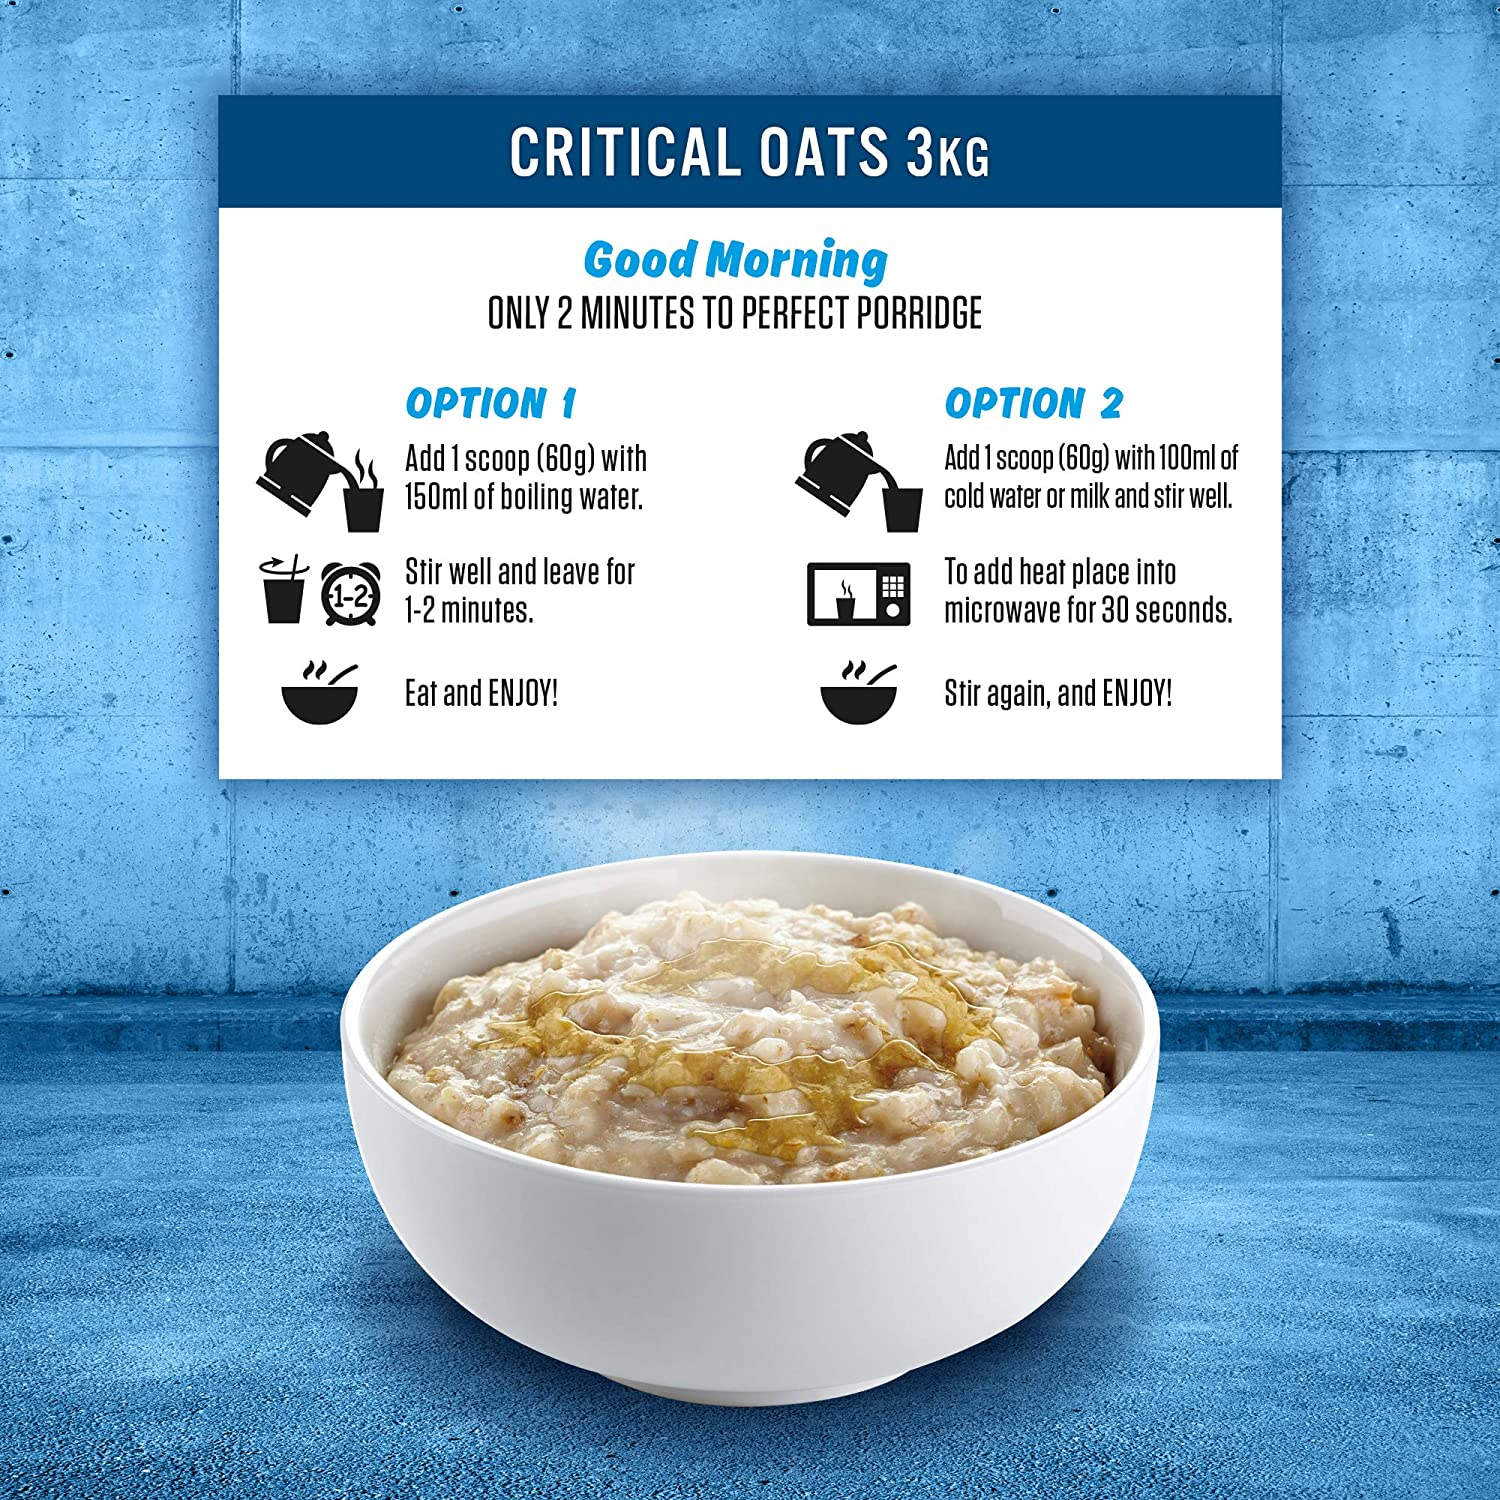 Applied Nutrition Critical Oats Protein Porridge Wholegrain Oats High Protein Including ISO-XP Protein Isolate Breakfast Snack Food Supplement 3kg - 50 Servings (Chocolate): Amazon.co.uk: Health & Personal Care